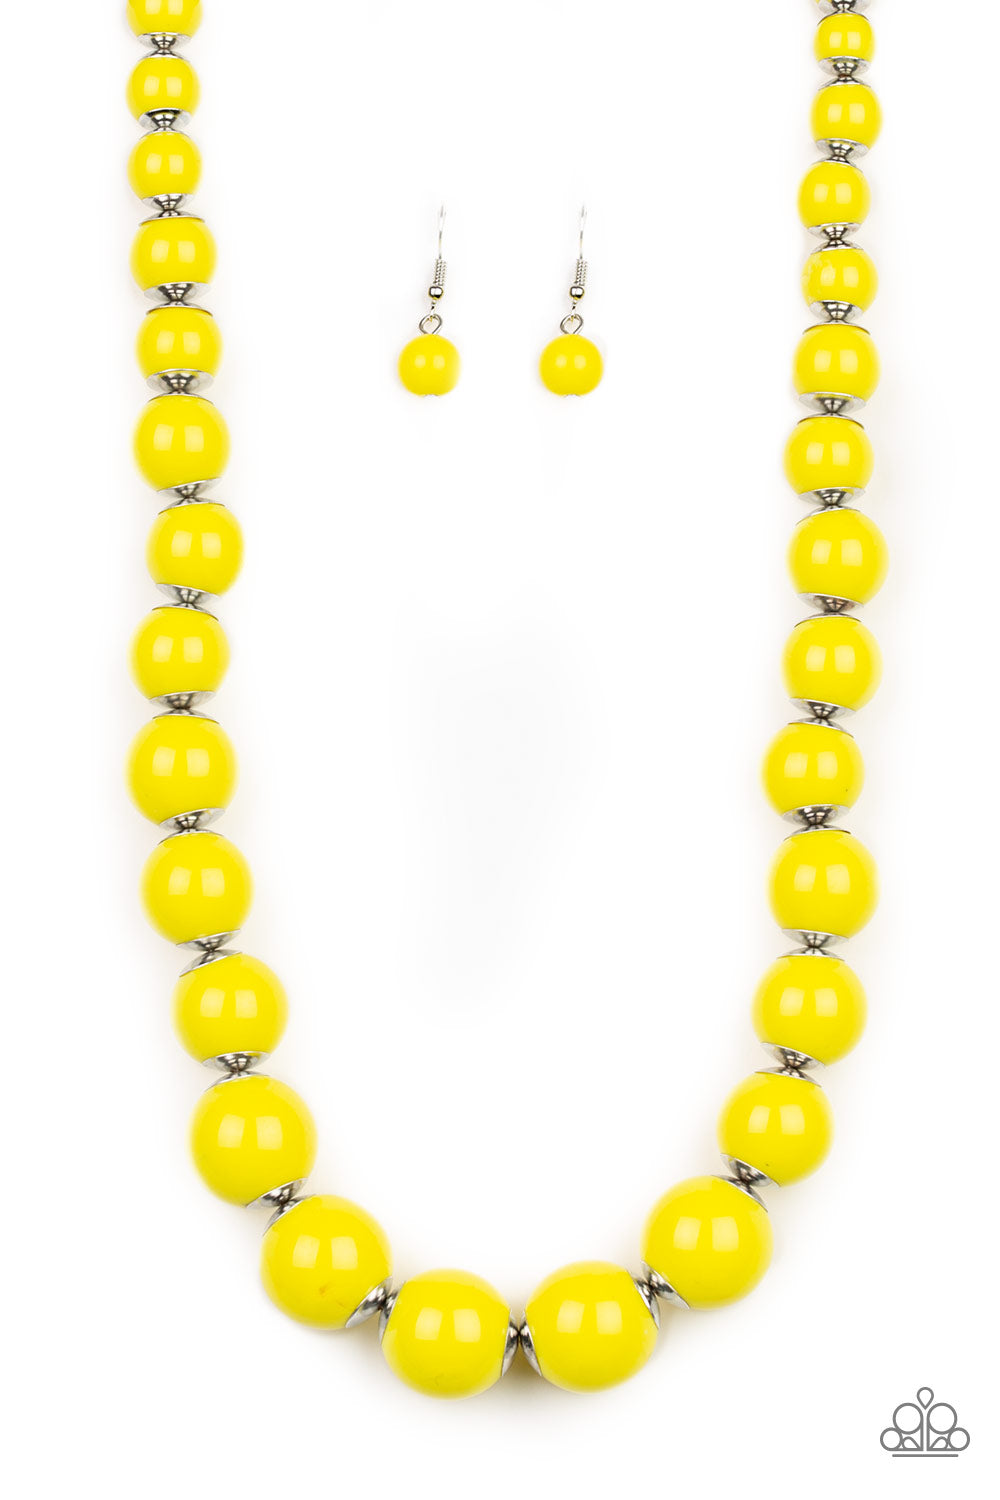 Paparazzi Accessories - Everyday Eye Candy - Yellow Necklace Set - JMJ Jewelry Collection